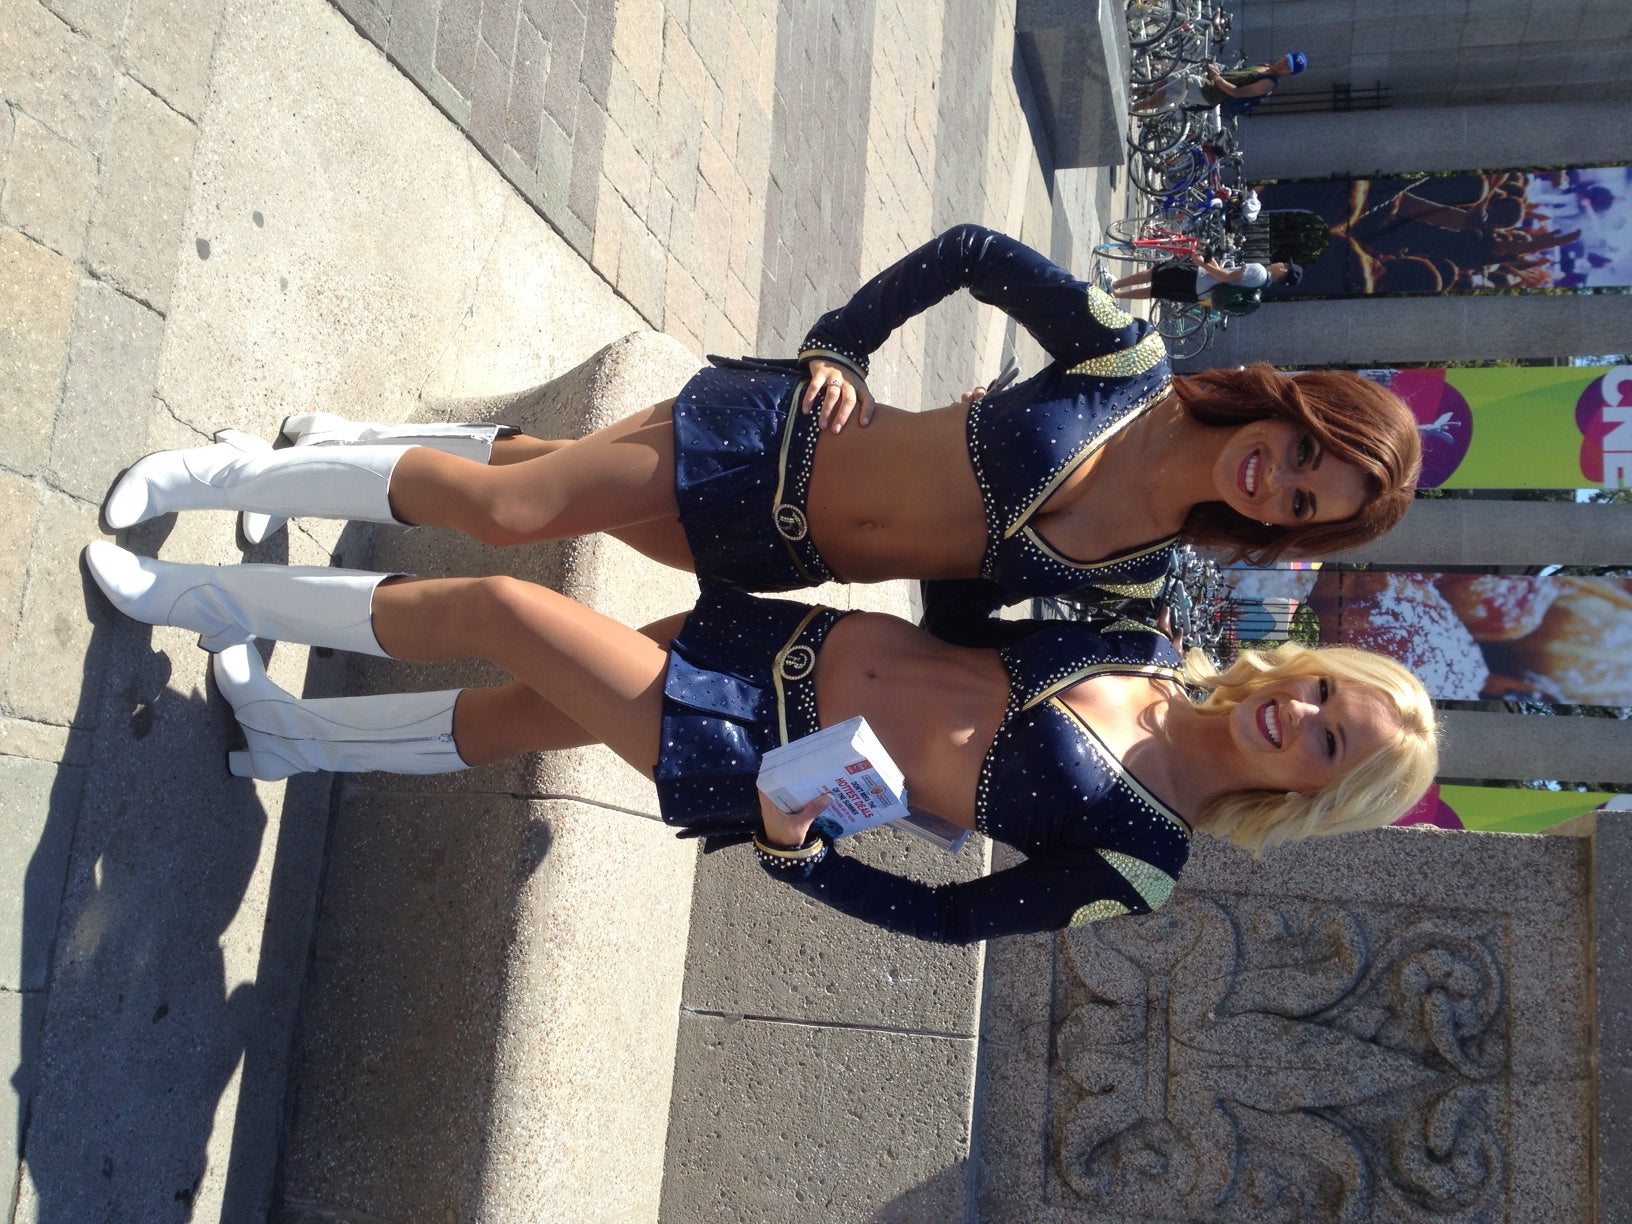 Custom Cheerleading Boots - Poppy Barley for the St. Louis Rams Cheerleaders. Poppy Barley offers custom boots and shoes sizes 5-15 in a variety of boots, flats, and ankle booties.